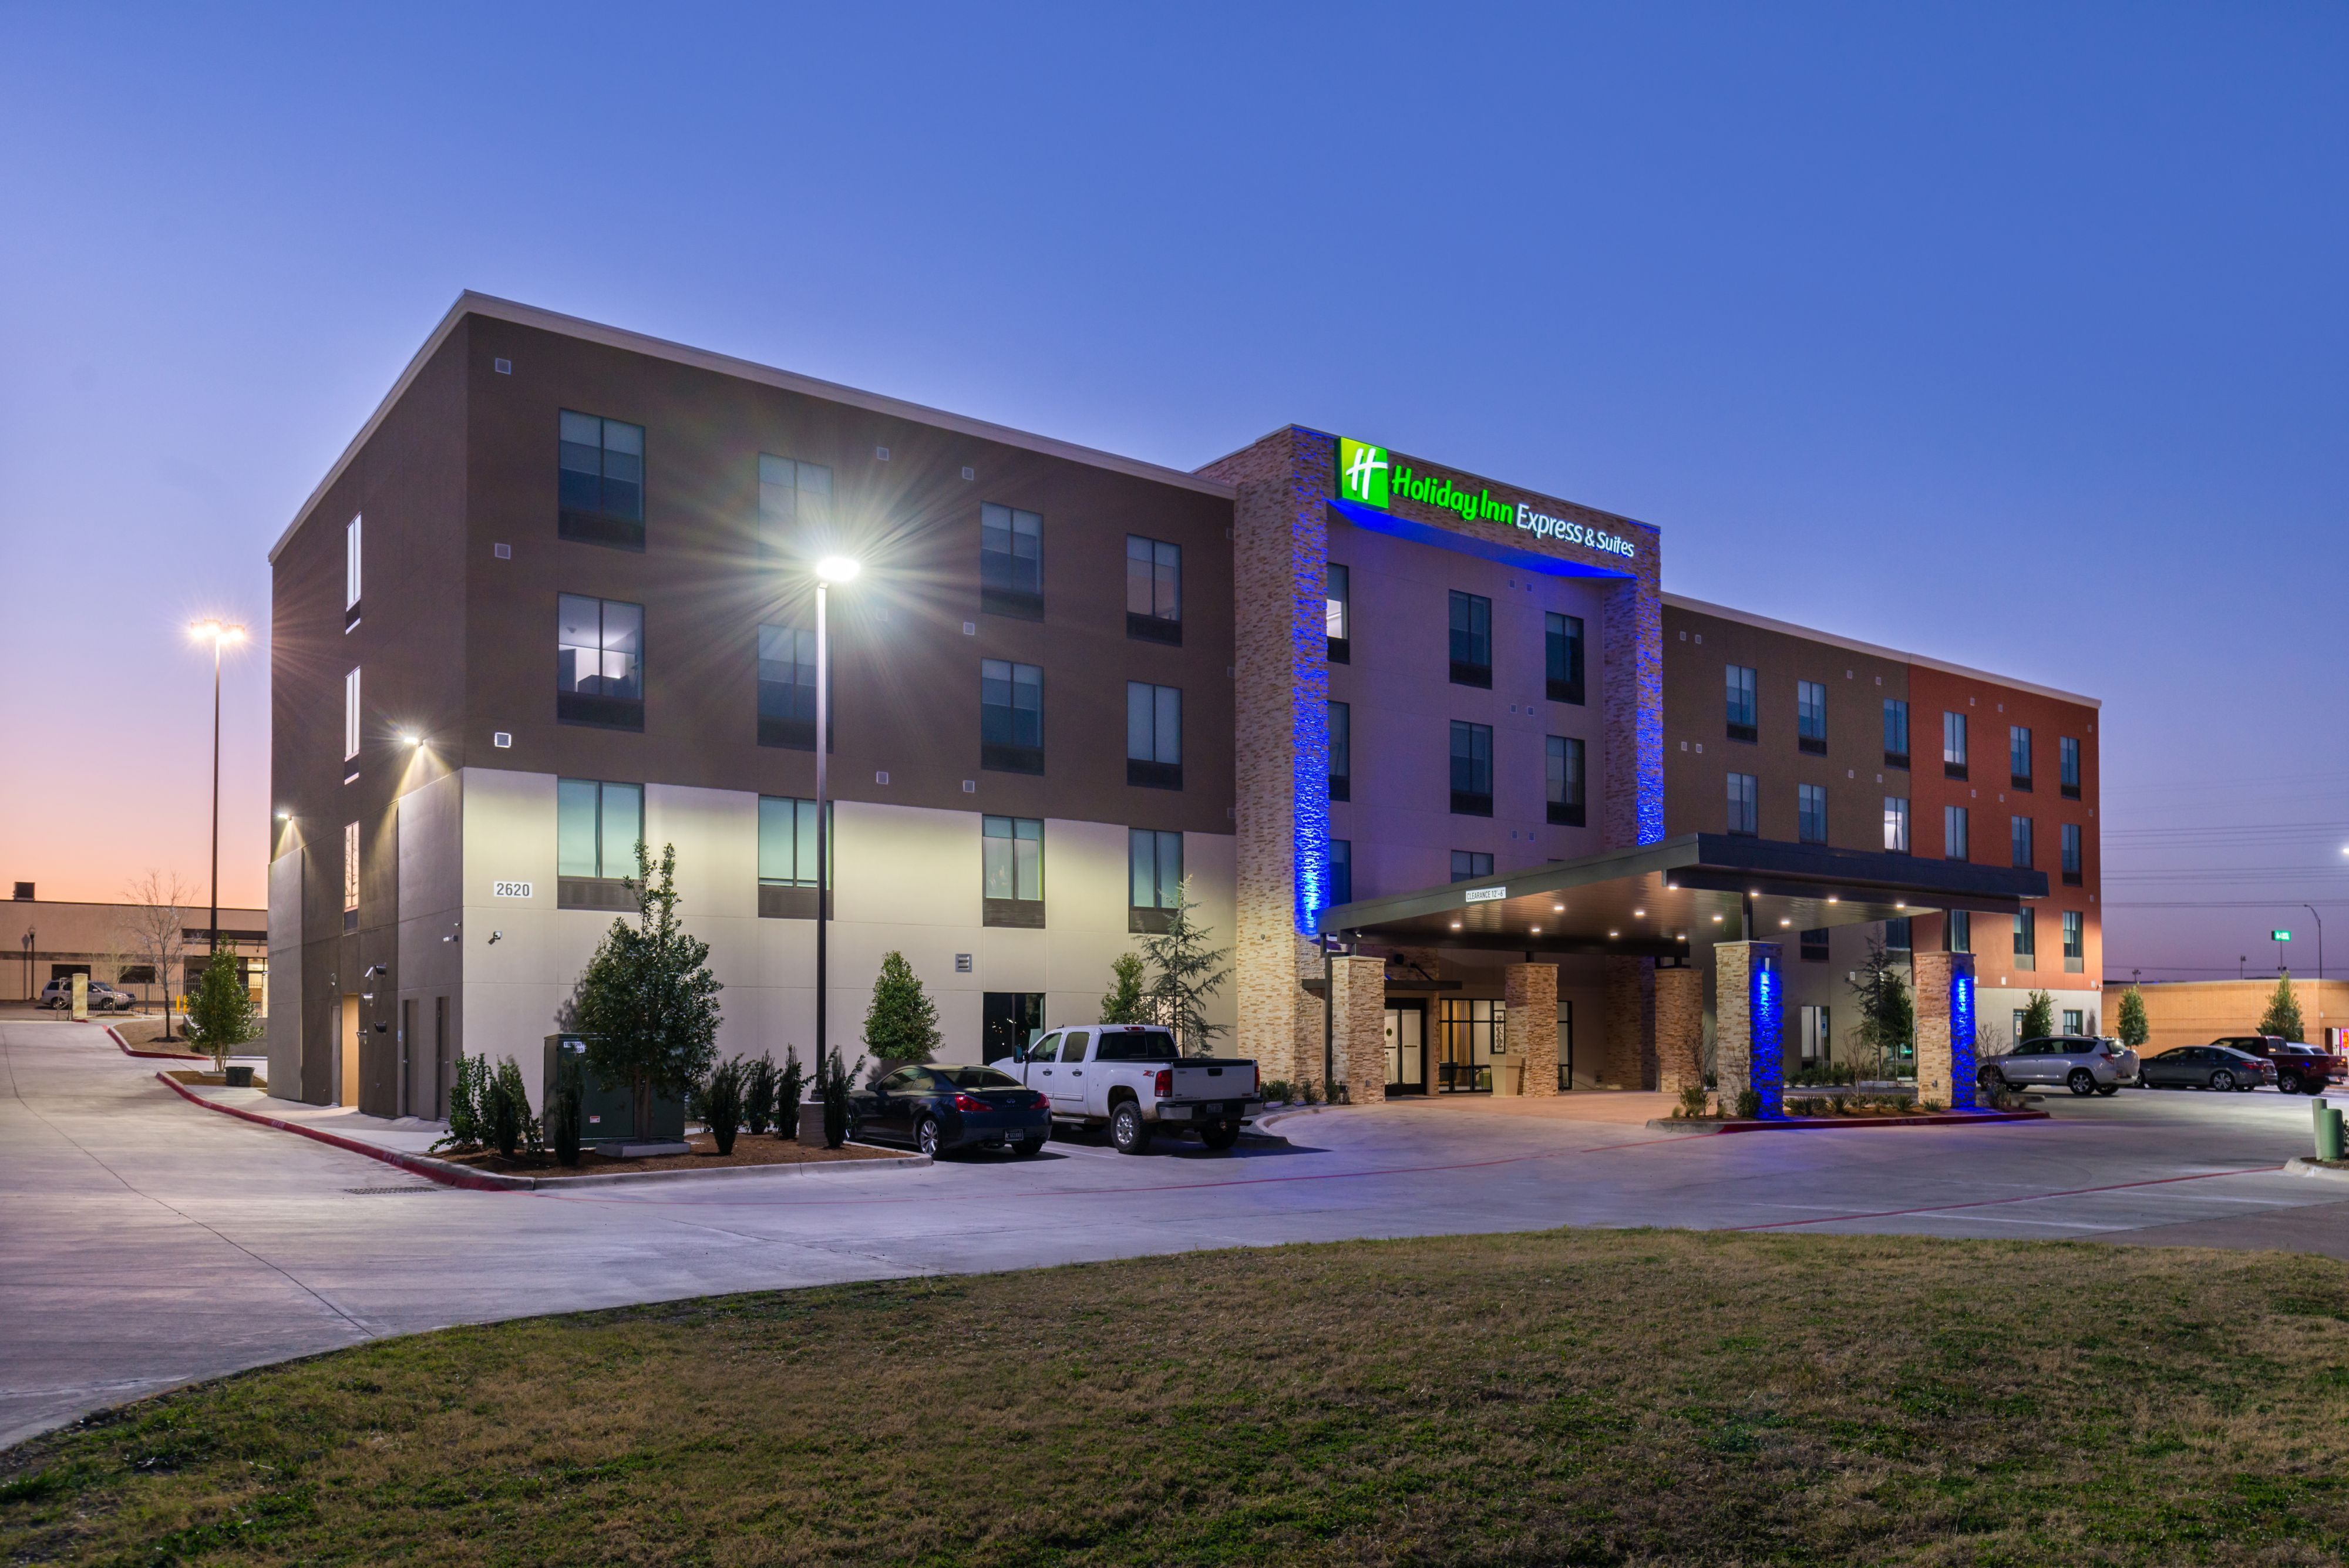 Holiday Inn Express Suites Dallas Ft Worth Airport Autos